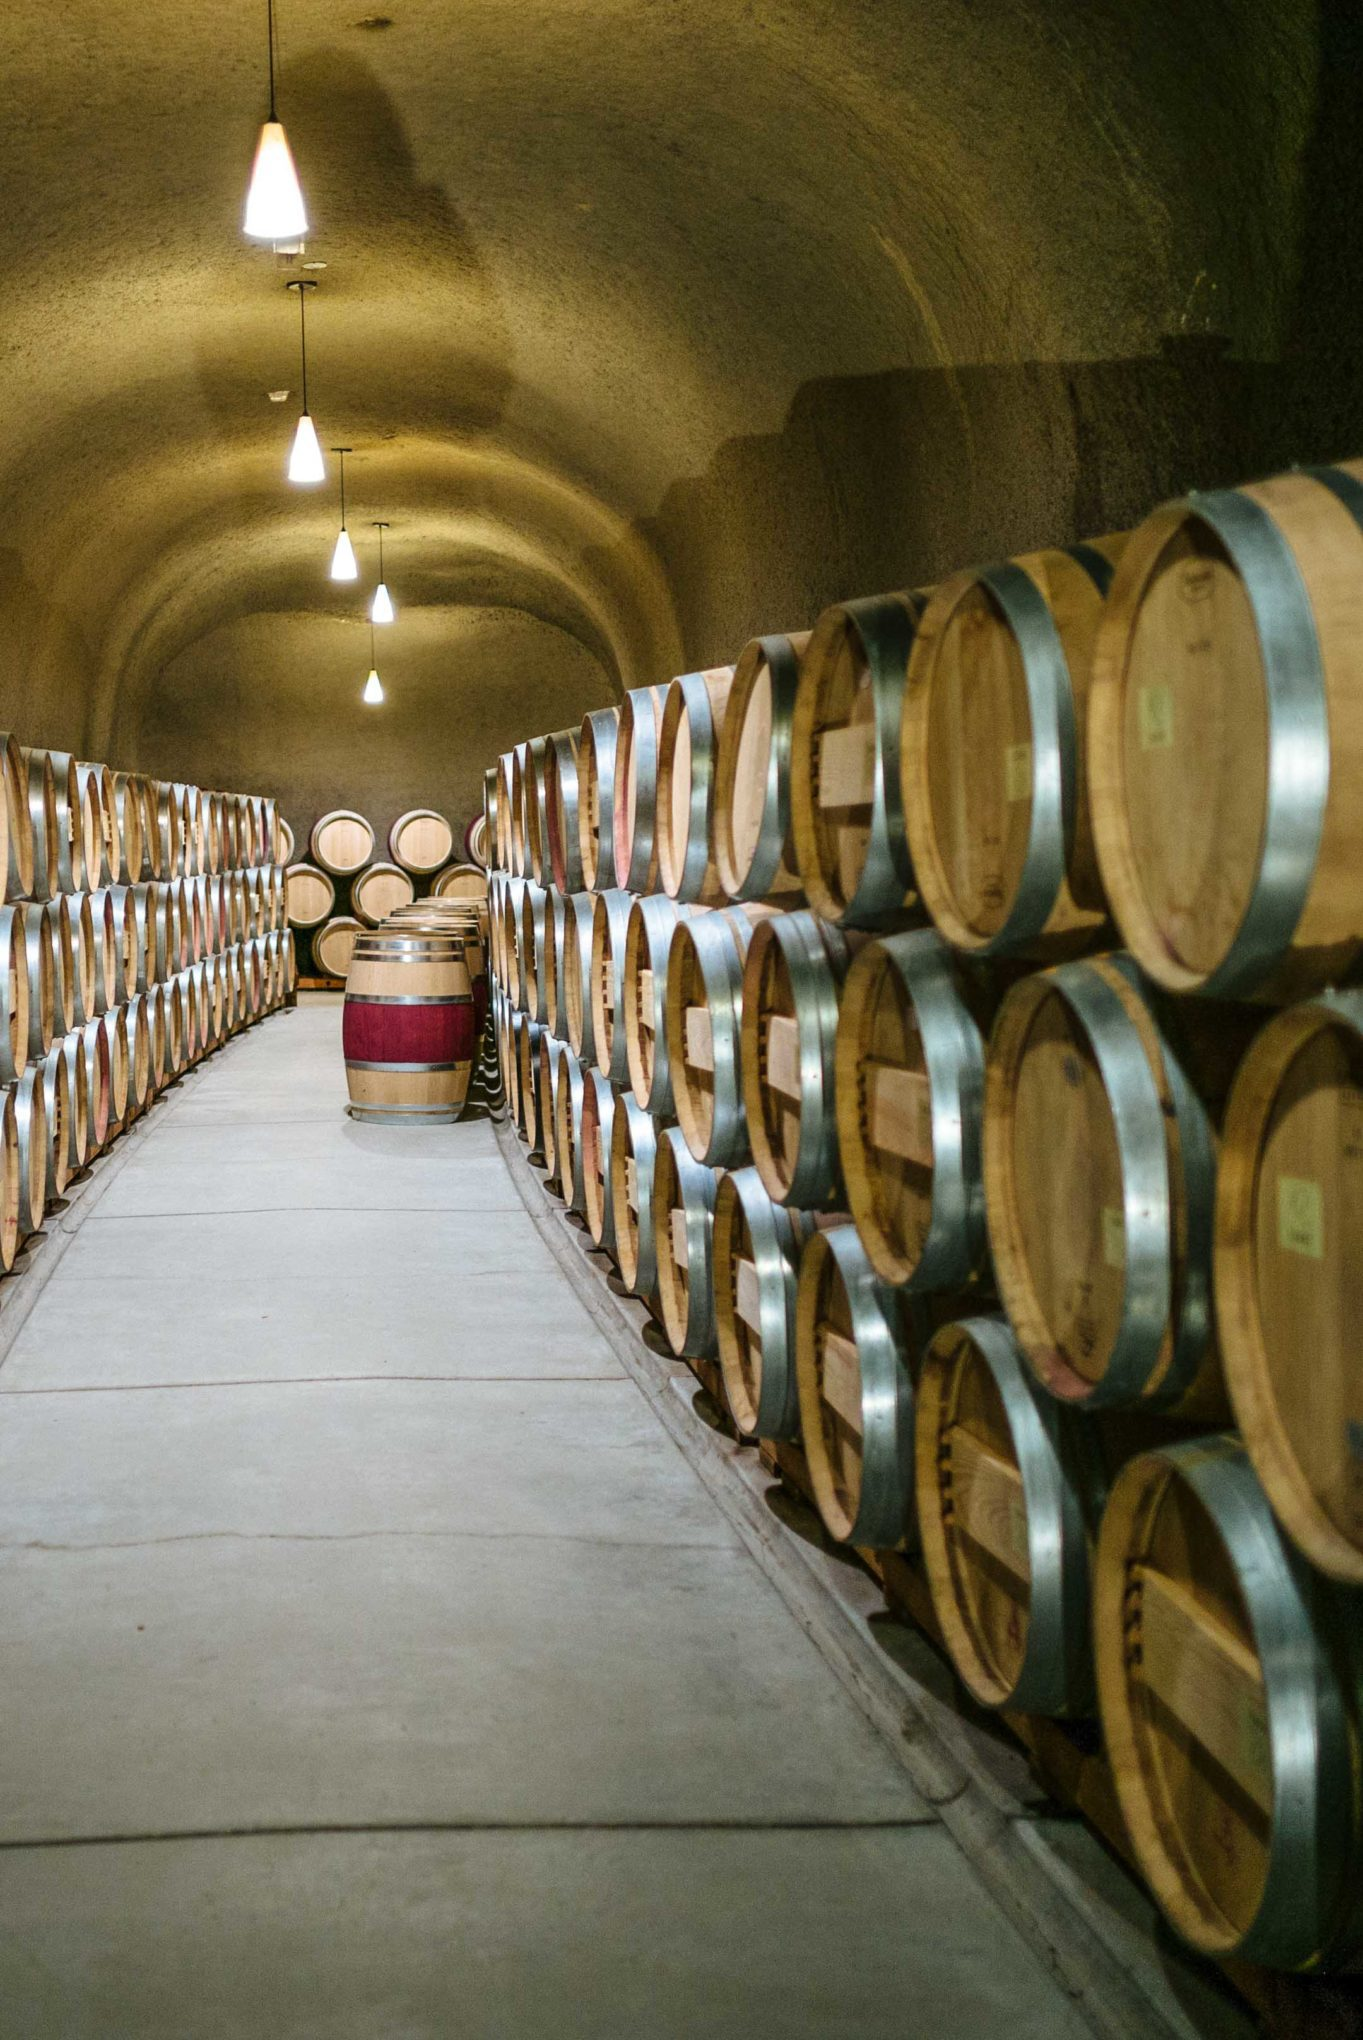 Quintessa winery wine caves in Napa Valley